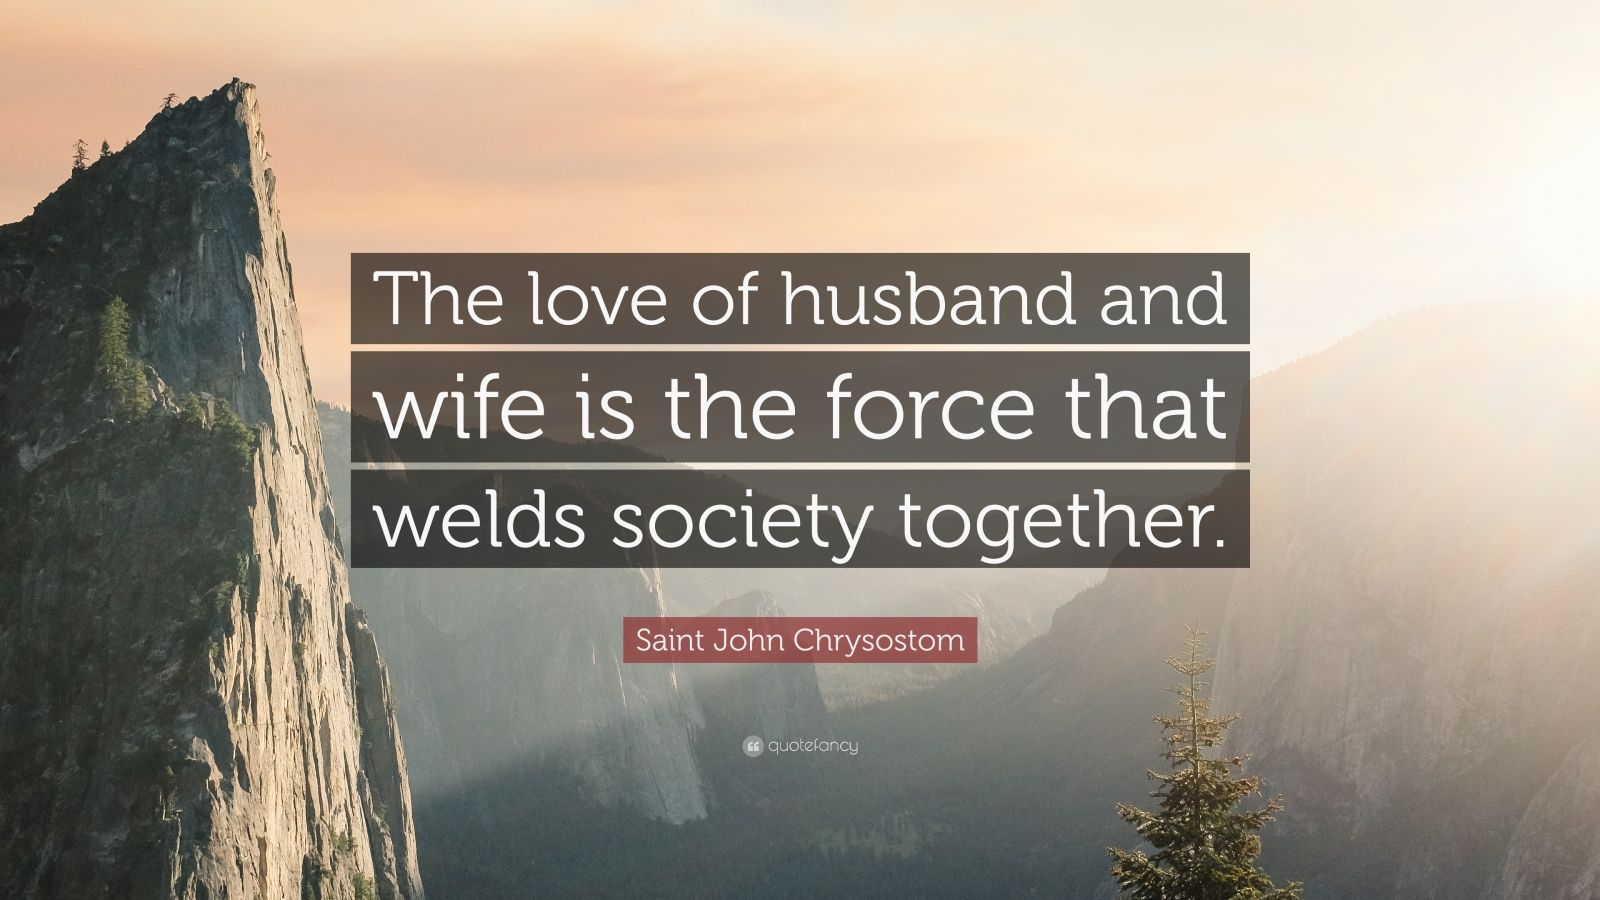 Saint John chrysostom Quote: ?The love of husband and wife is the force that welds society ...